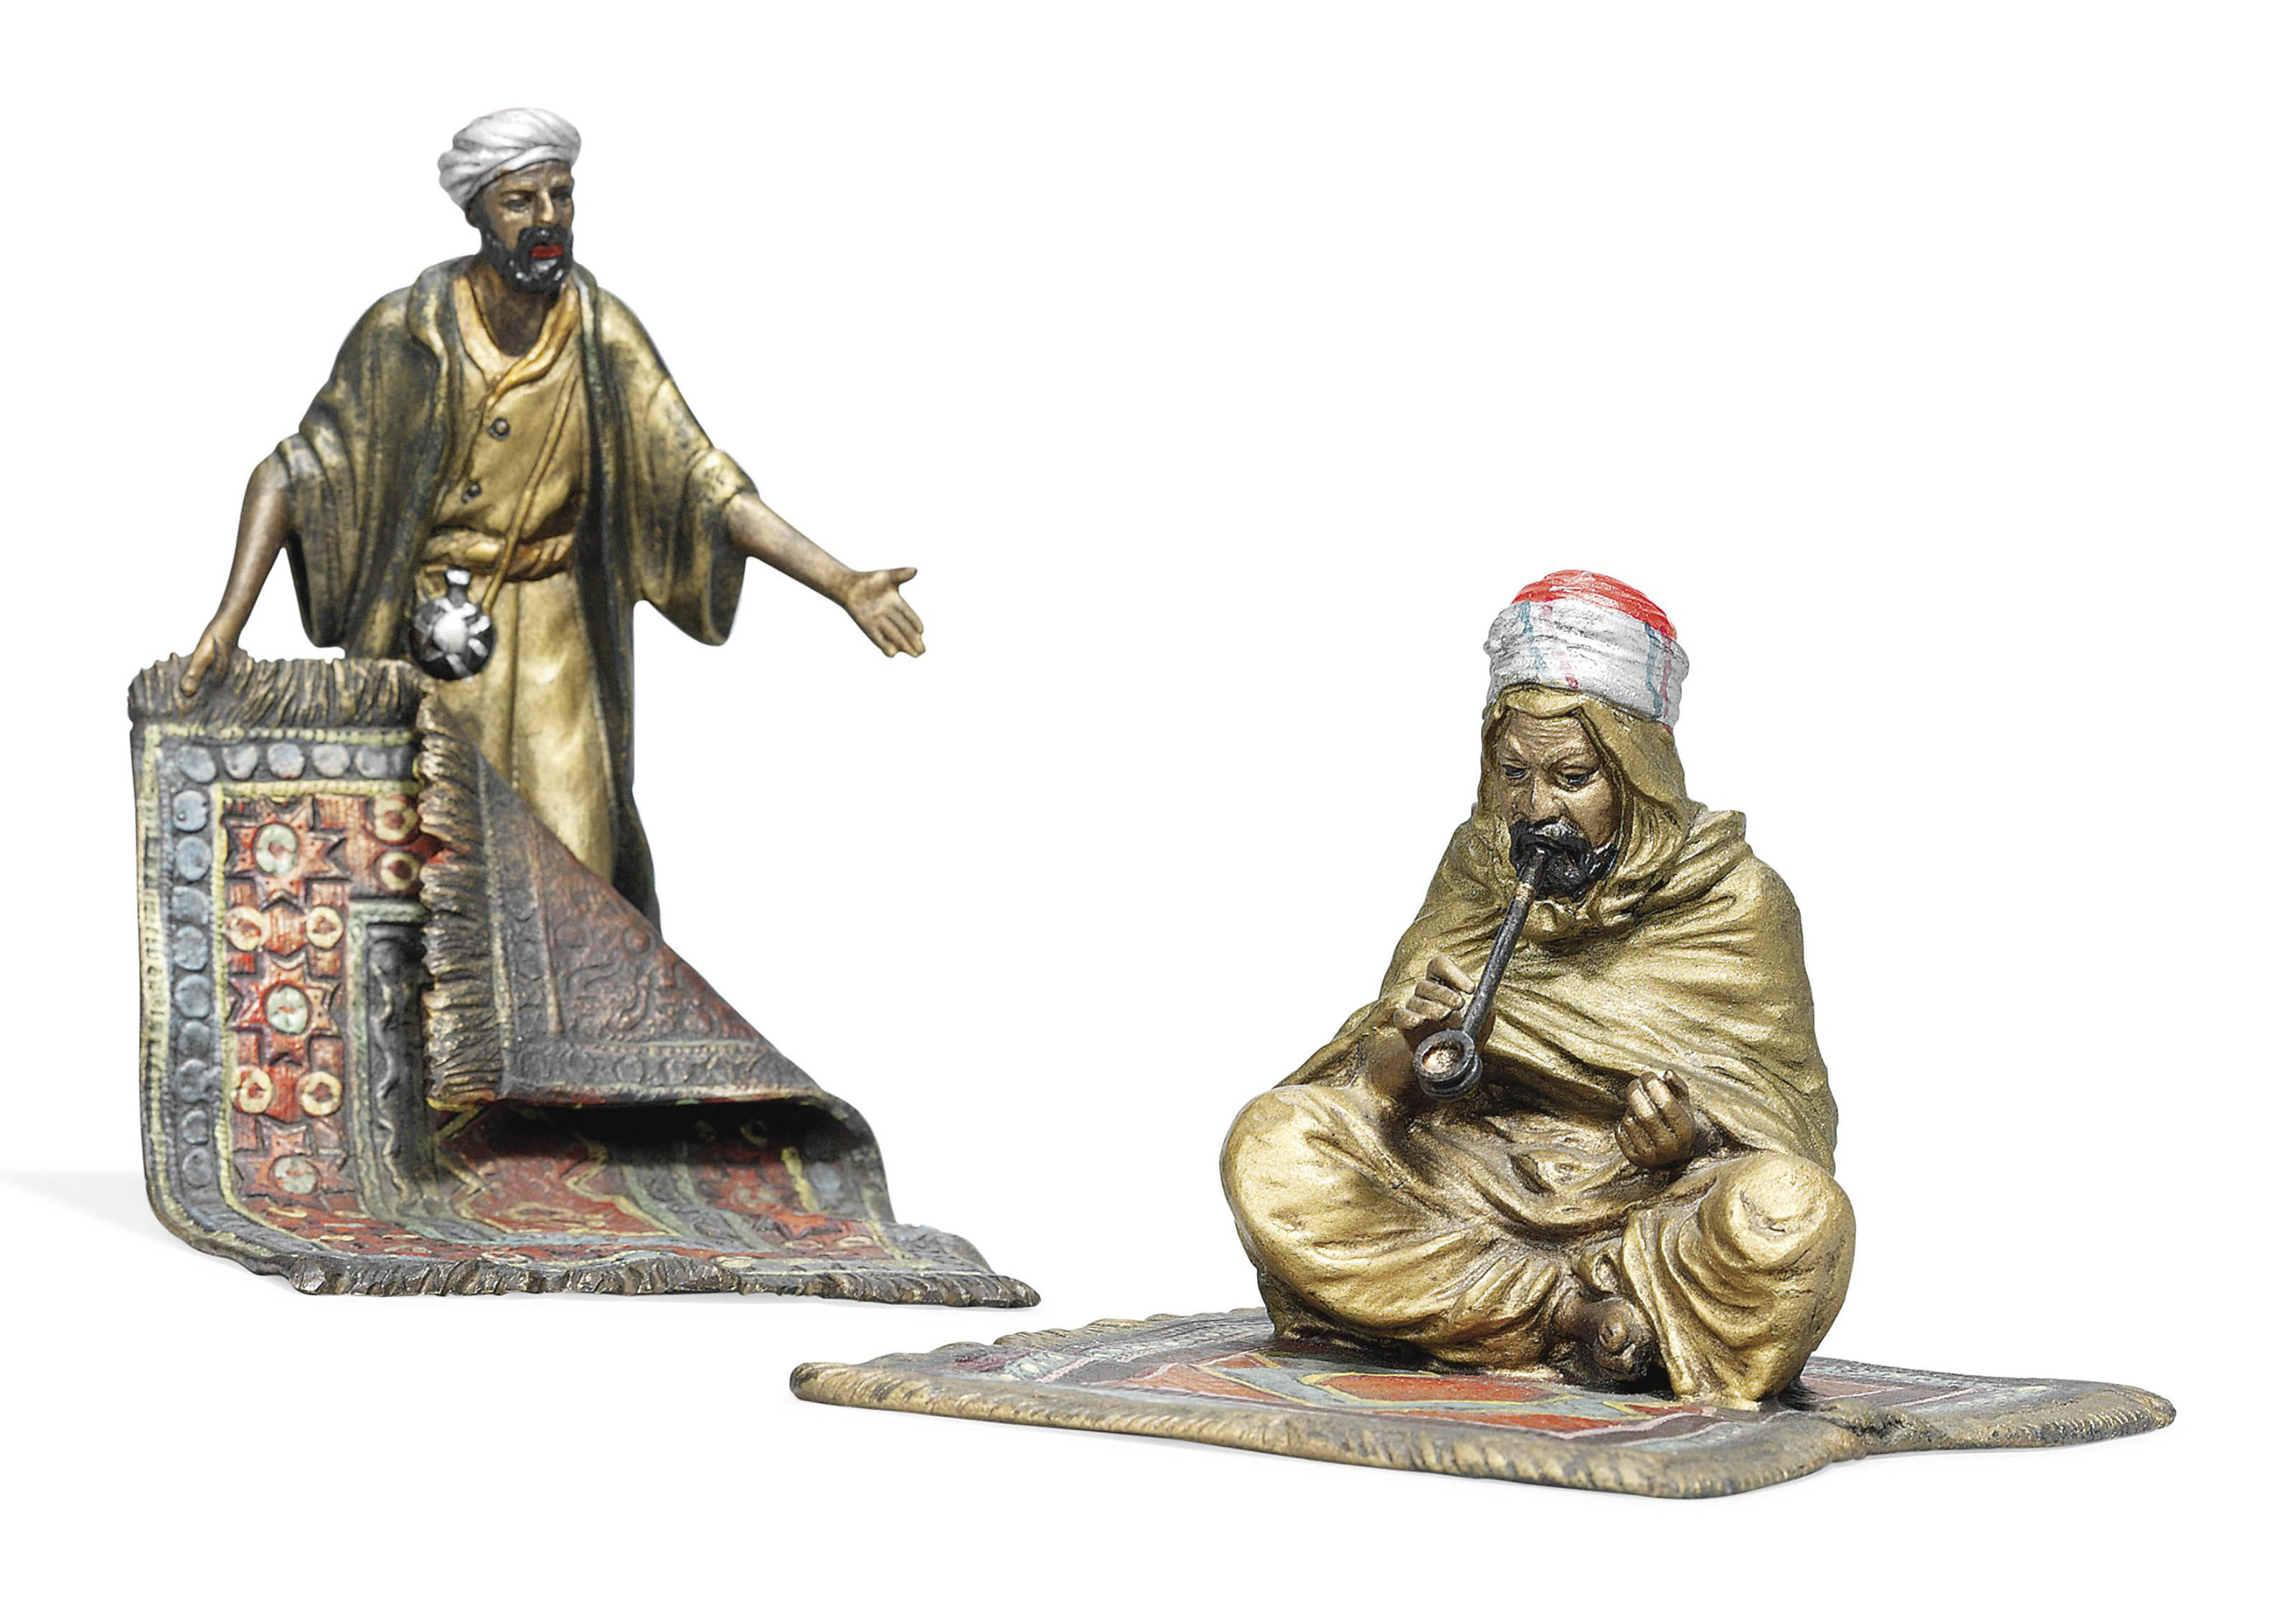 TWO AUSTRIAN COLD-PAINTED ORIENTALIST FIGURINES